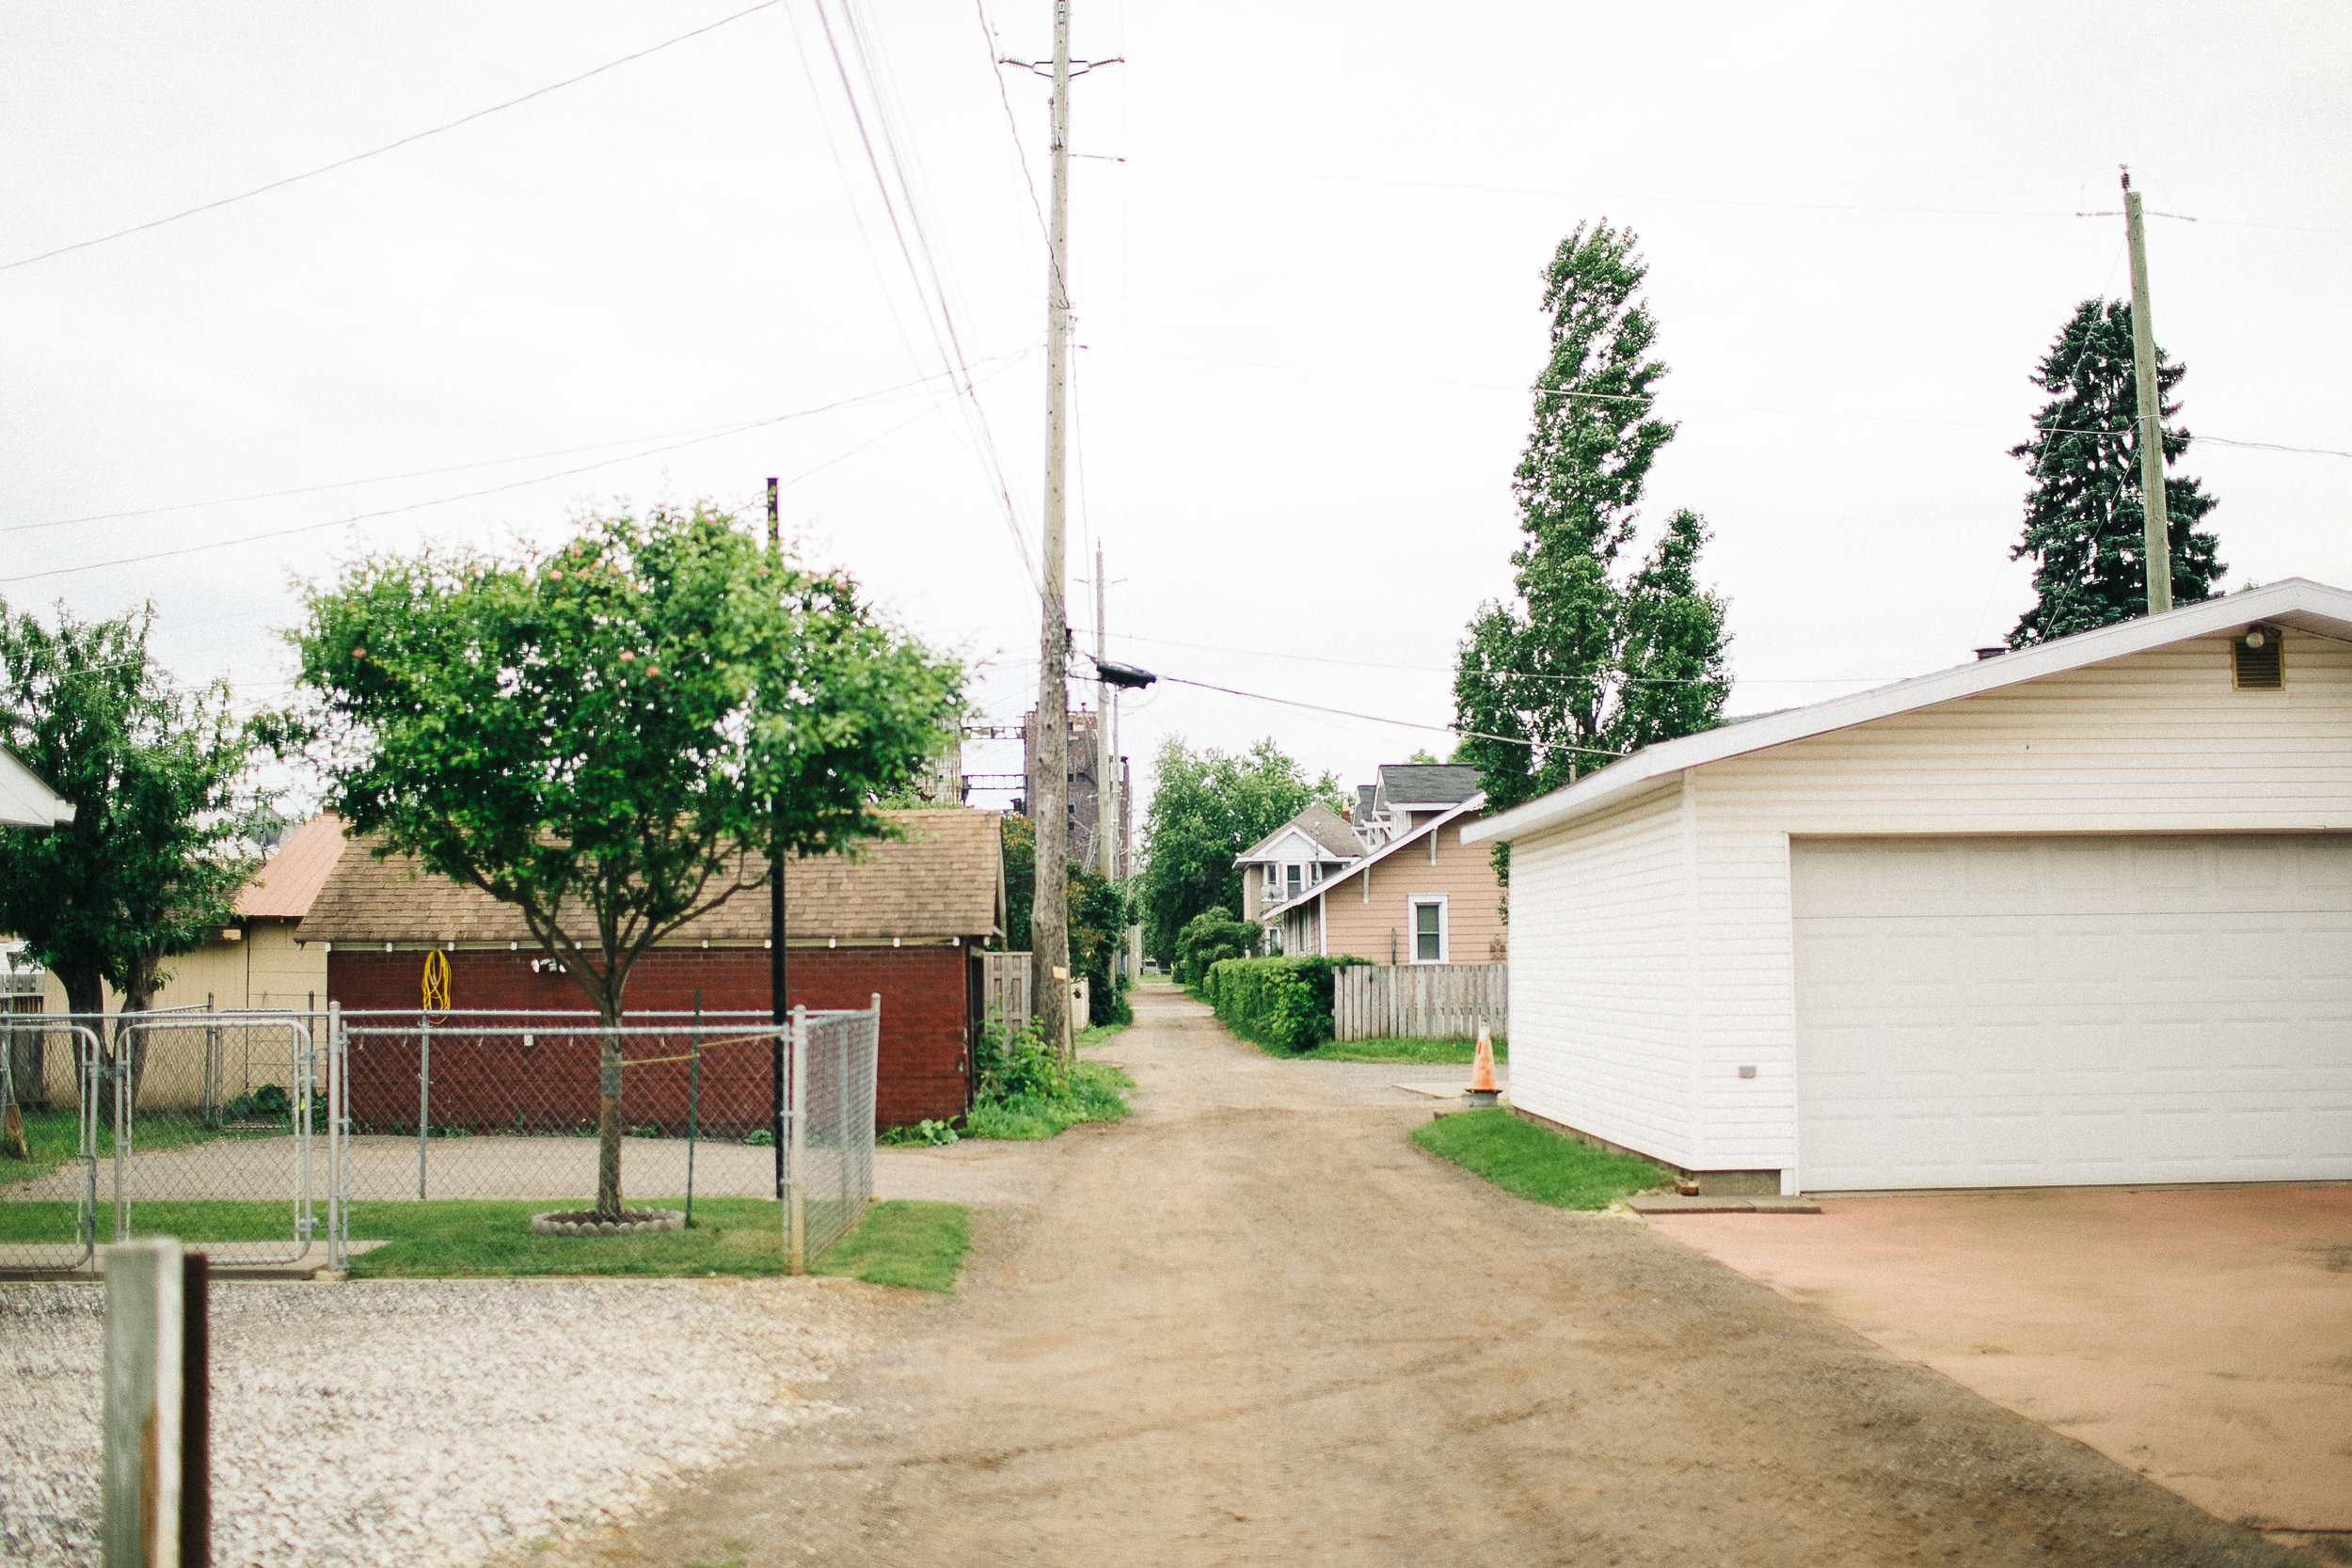 Back lanes of Westfort, Thunder Bay ON, 2017